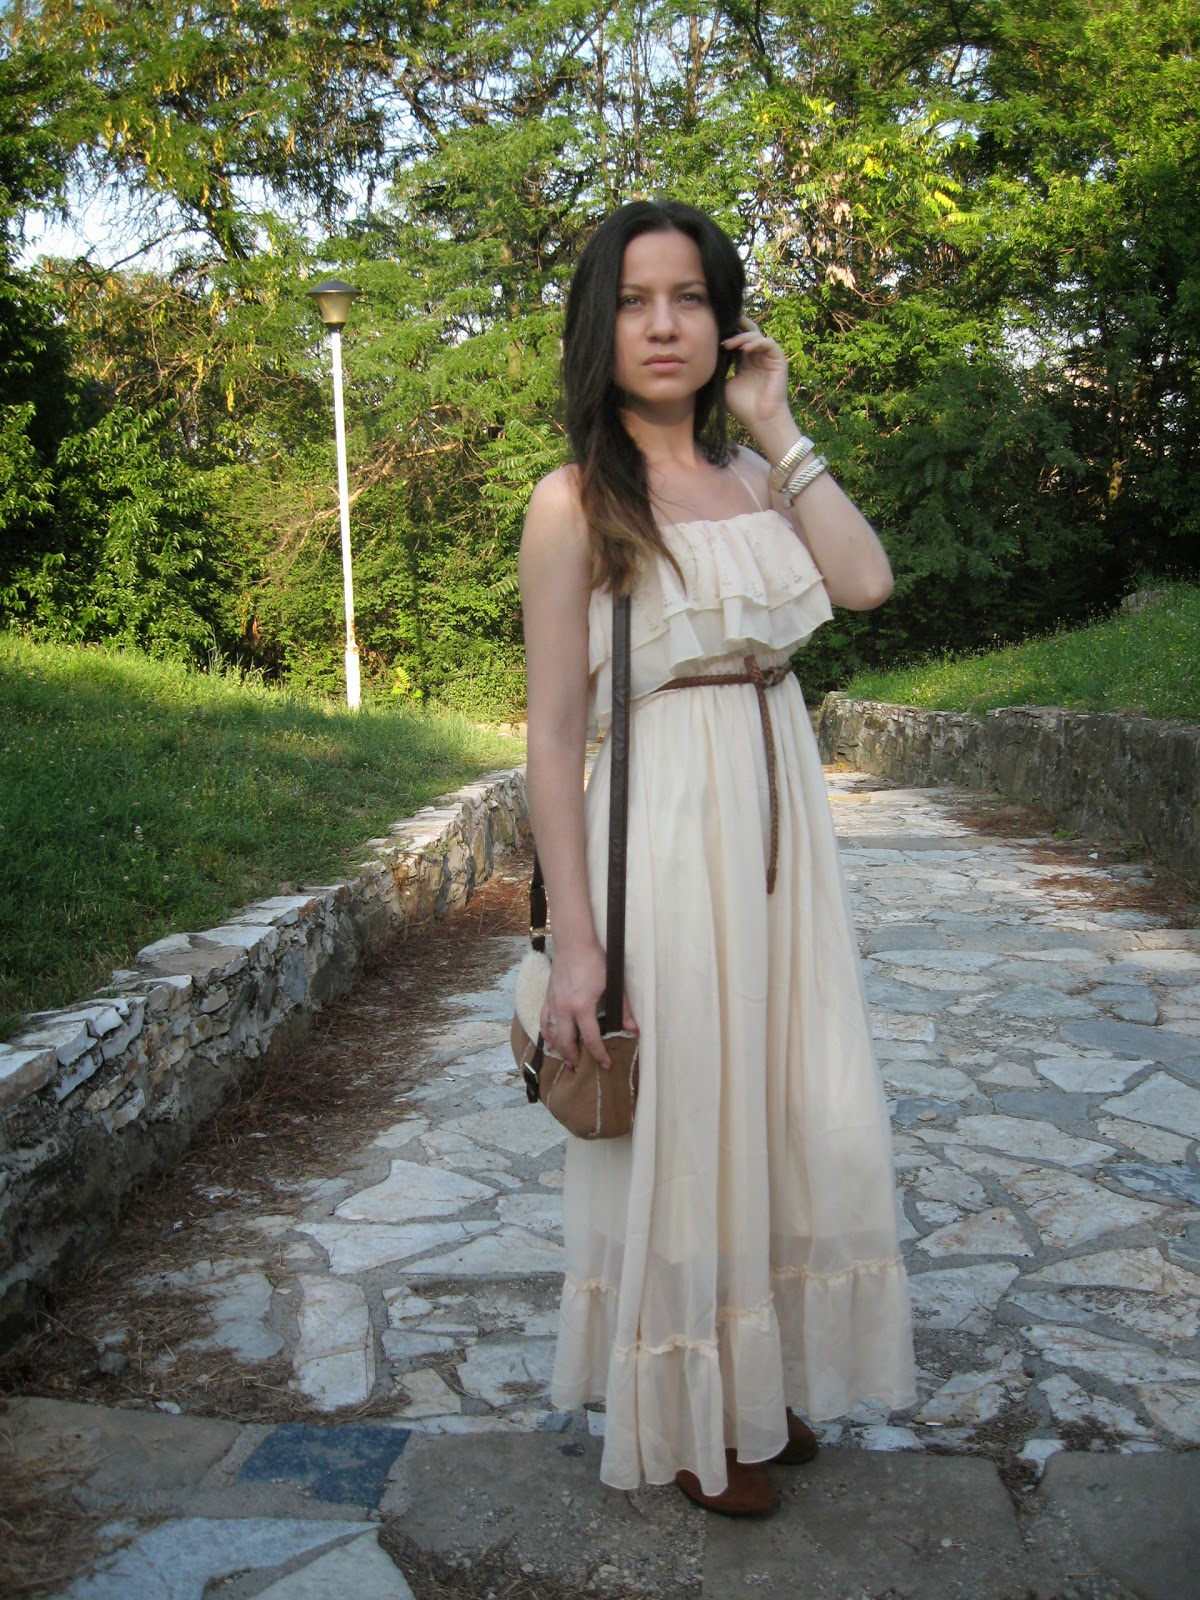 beige ruffled maxi dress, flat tan boots, tan over the shoulder bag, casual look, neutrals